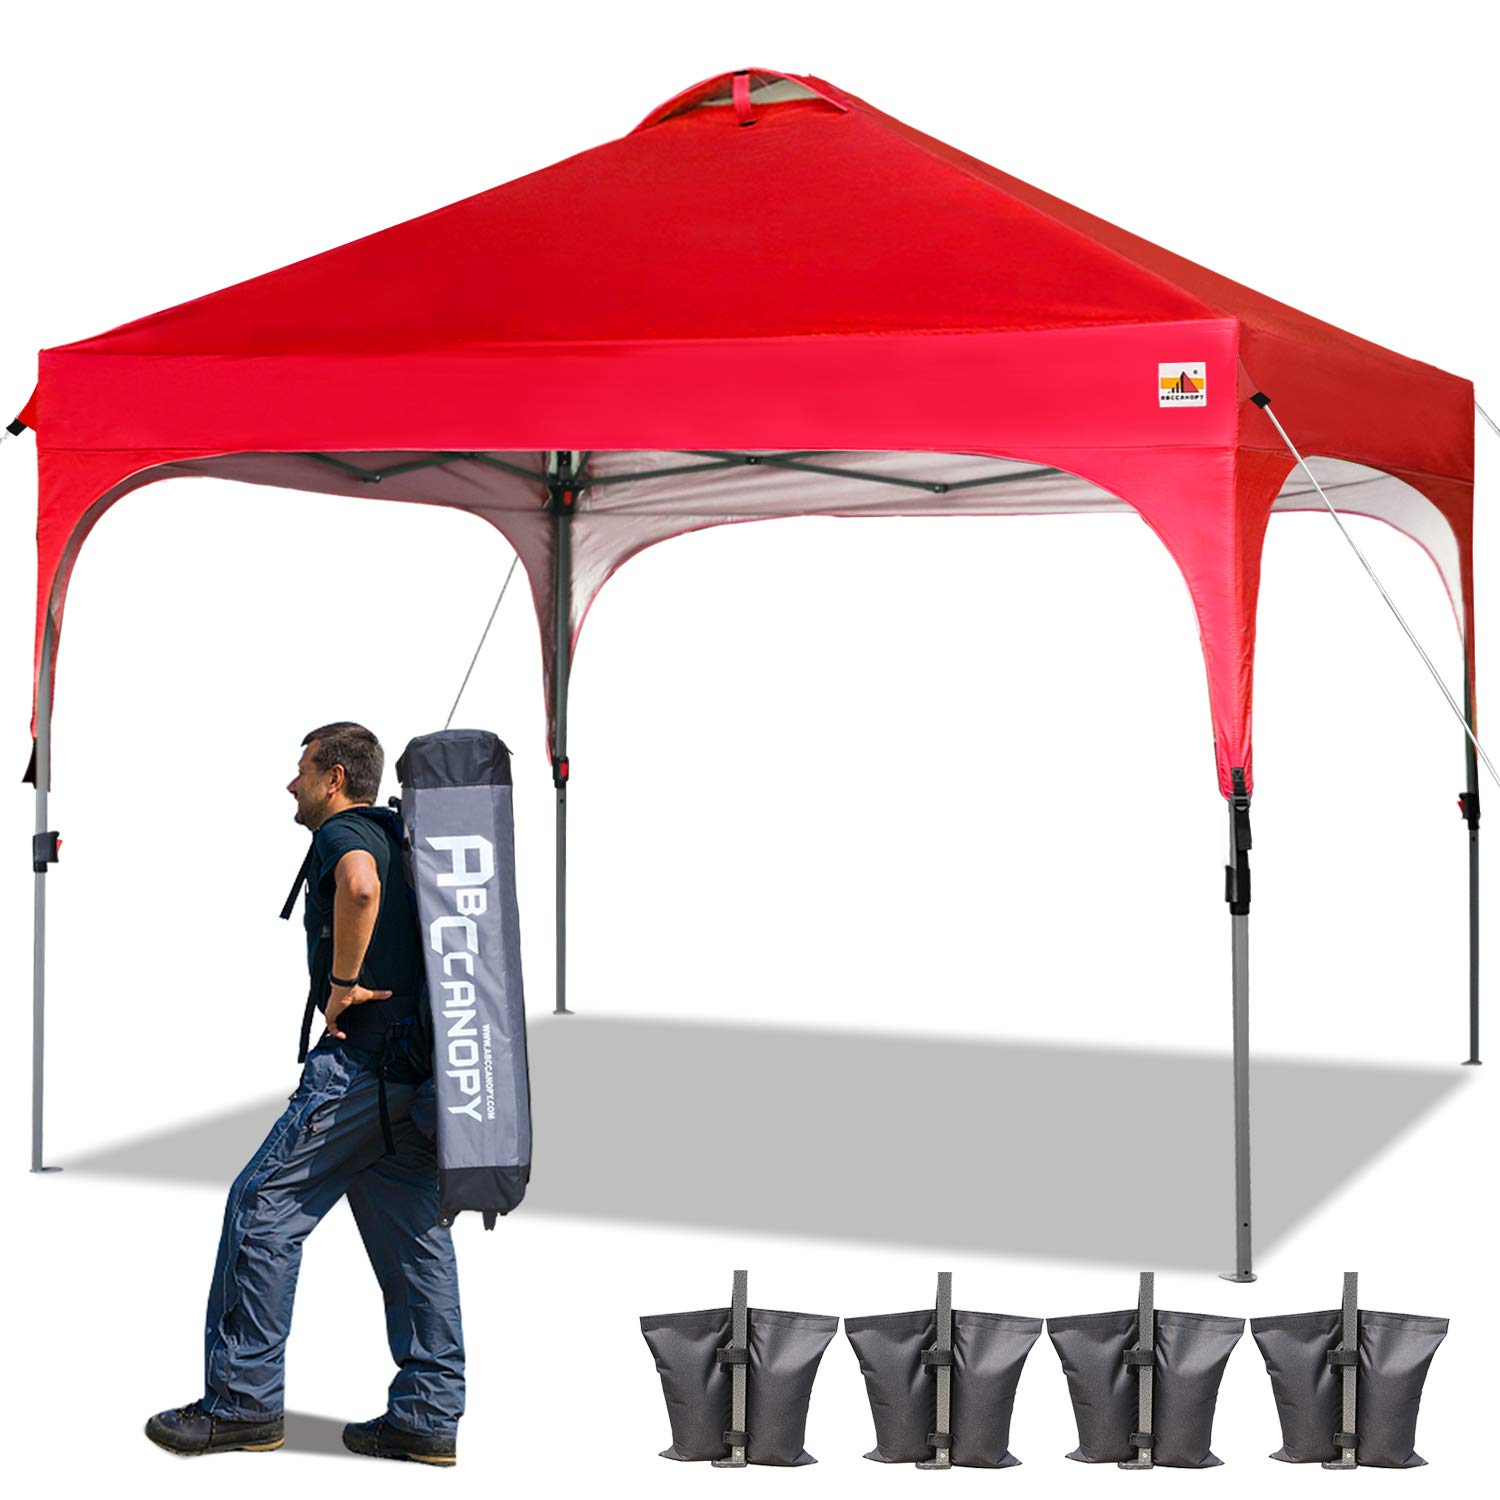 ABCCANOPY 10 x 10 Pop-Up Canopy Tent Beach Canopy Instant Shelter Tents Canopy Popup Outdoor Portable Shade with Wheeled Carry Bag Bonus Extra 4 x Weight Bags, 4 x Ropes& 4 x Stakes, Red